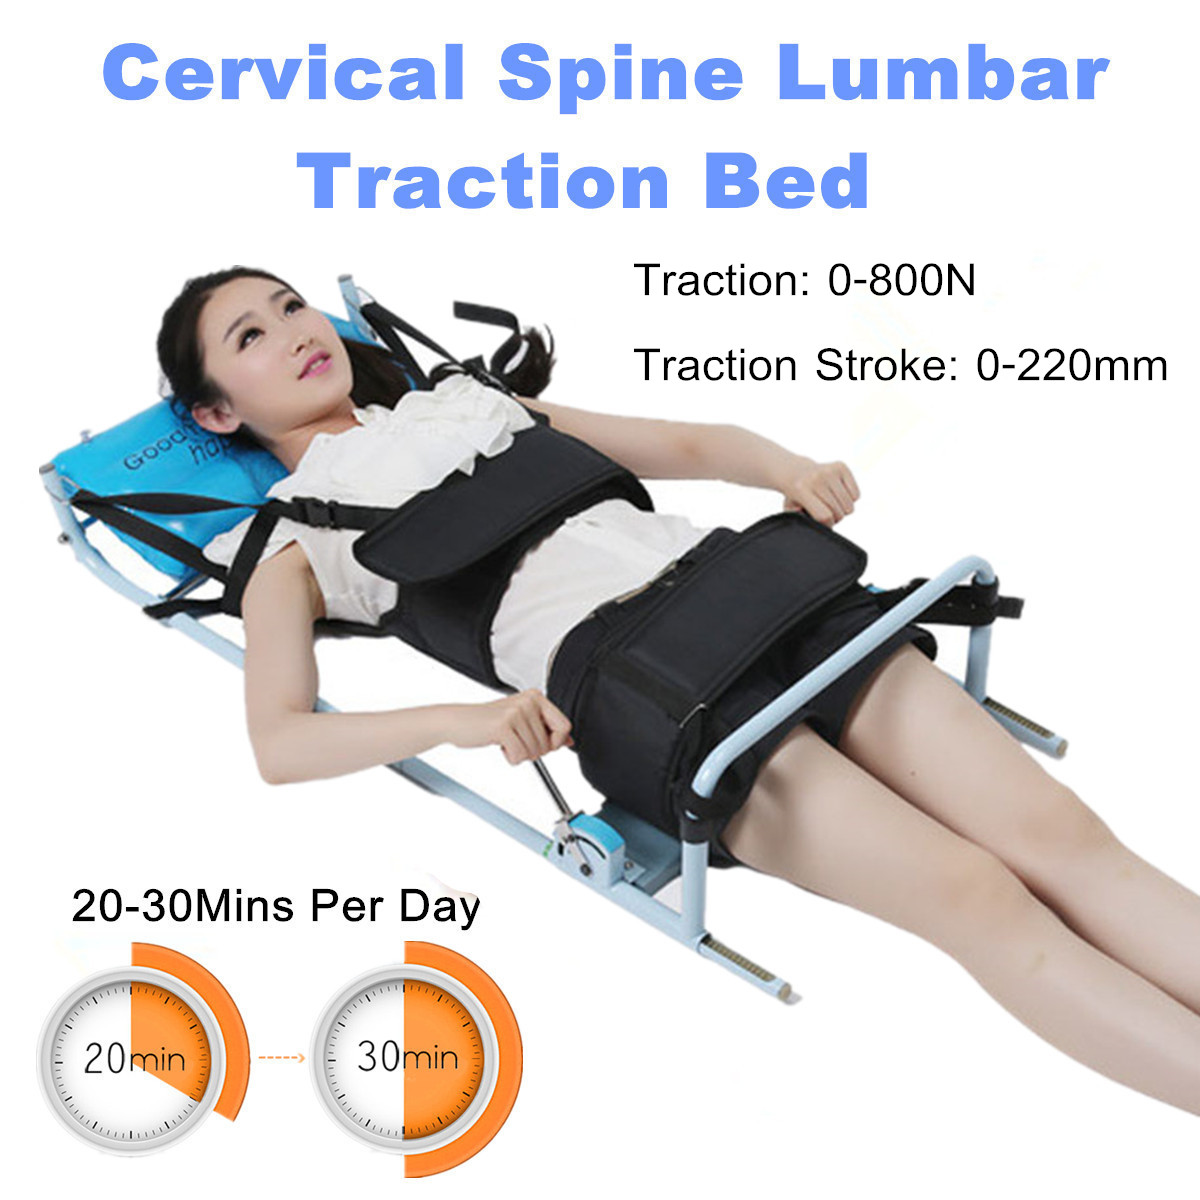 Cervical Spine Lumbar Spine Traction Bed Therapy Massage Bodys Stretch Device Reduction Spinal Joint Pressure Steel Pipe Health майка united colors of benetton майка 2шт